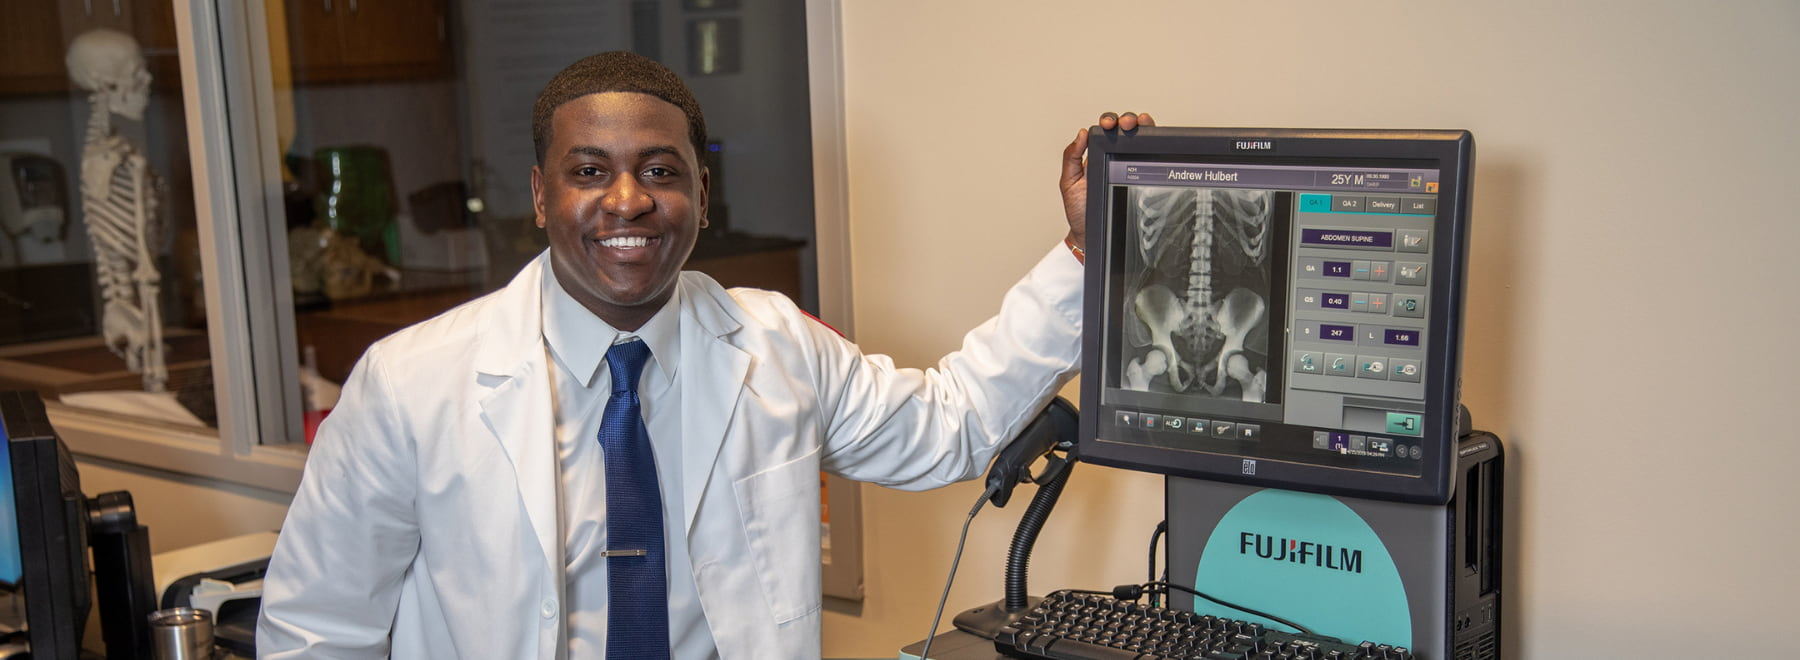 Male radiologic sciences student poses in front of equipment.